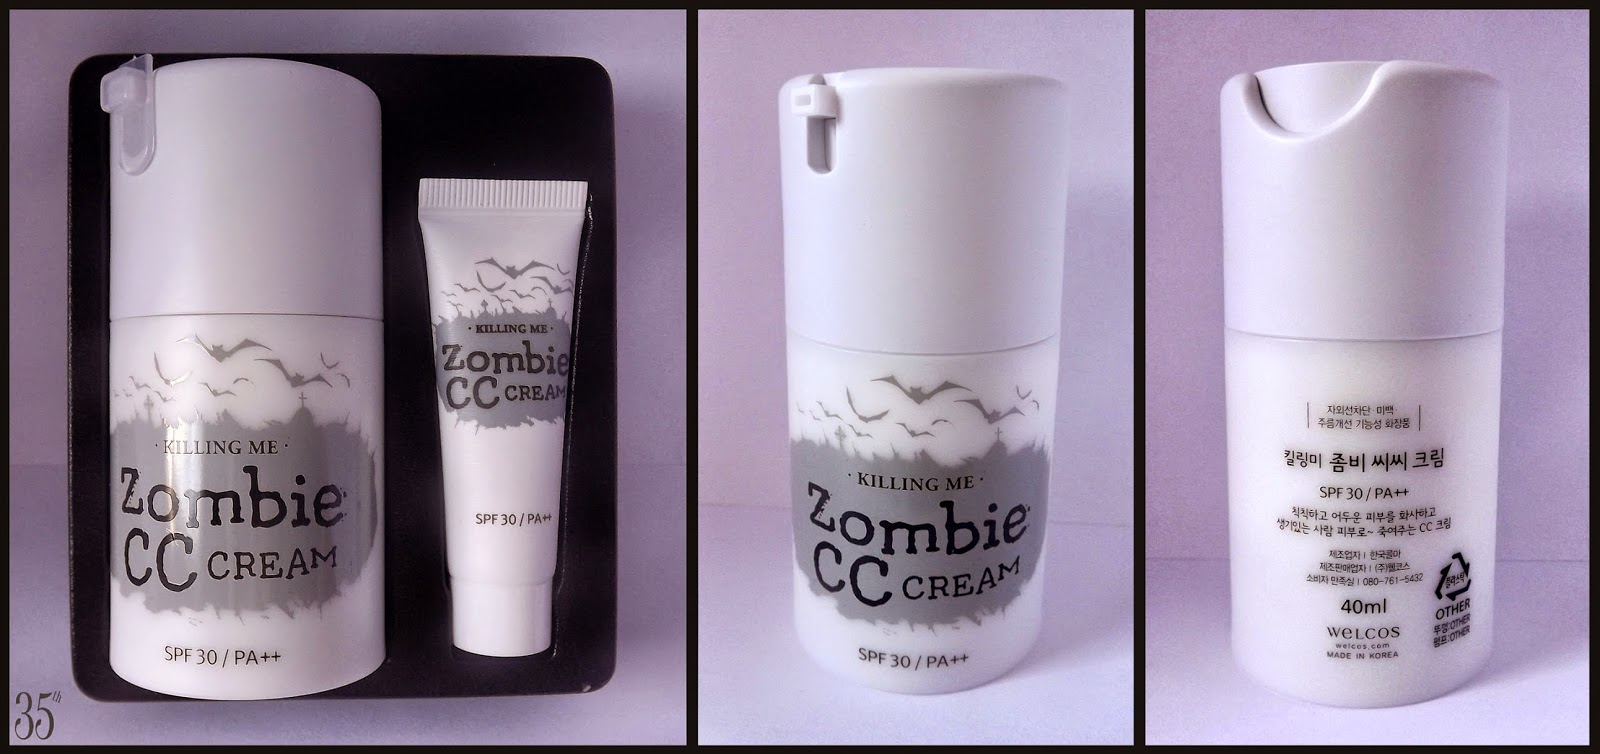 Welcos Killing me Zombie CC Cream